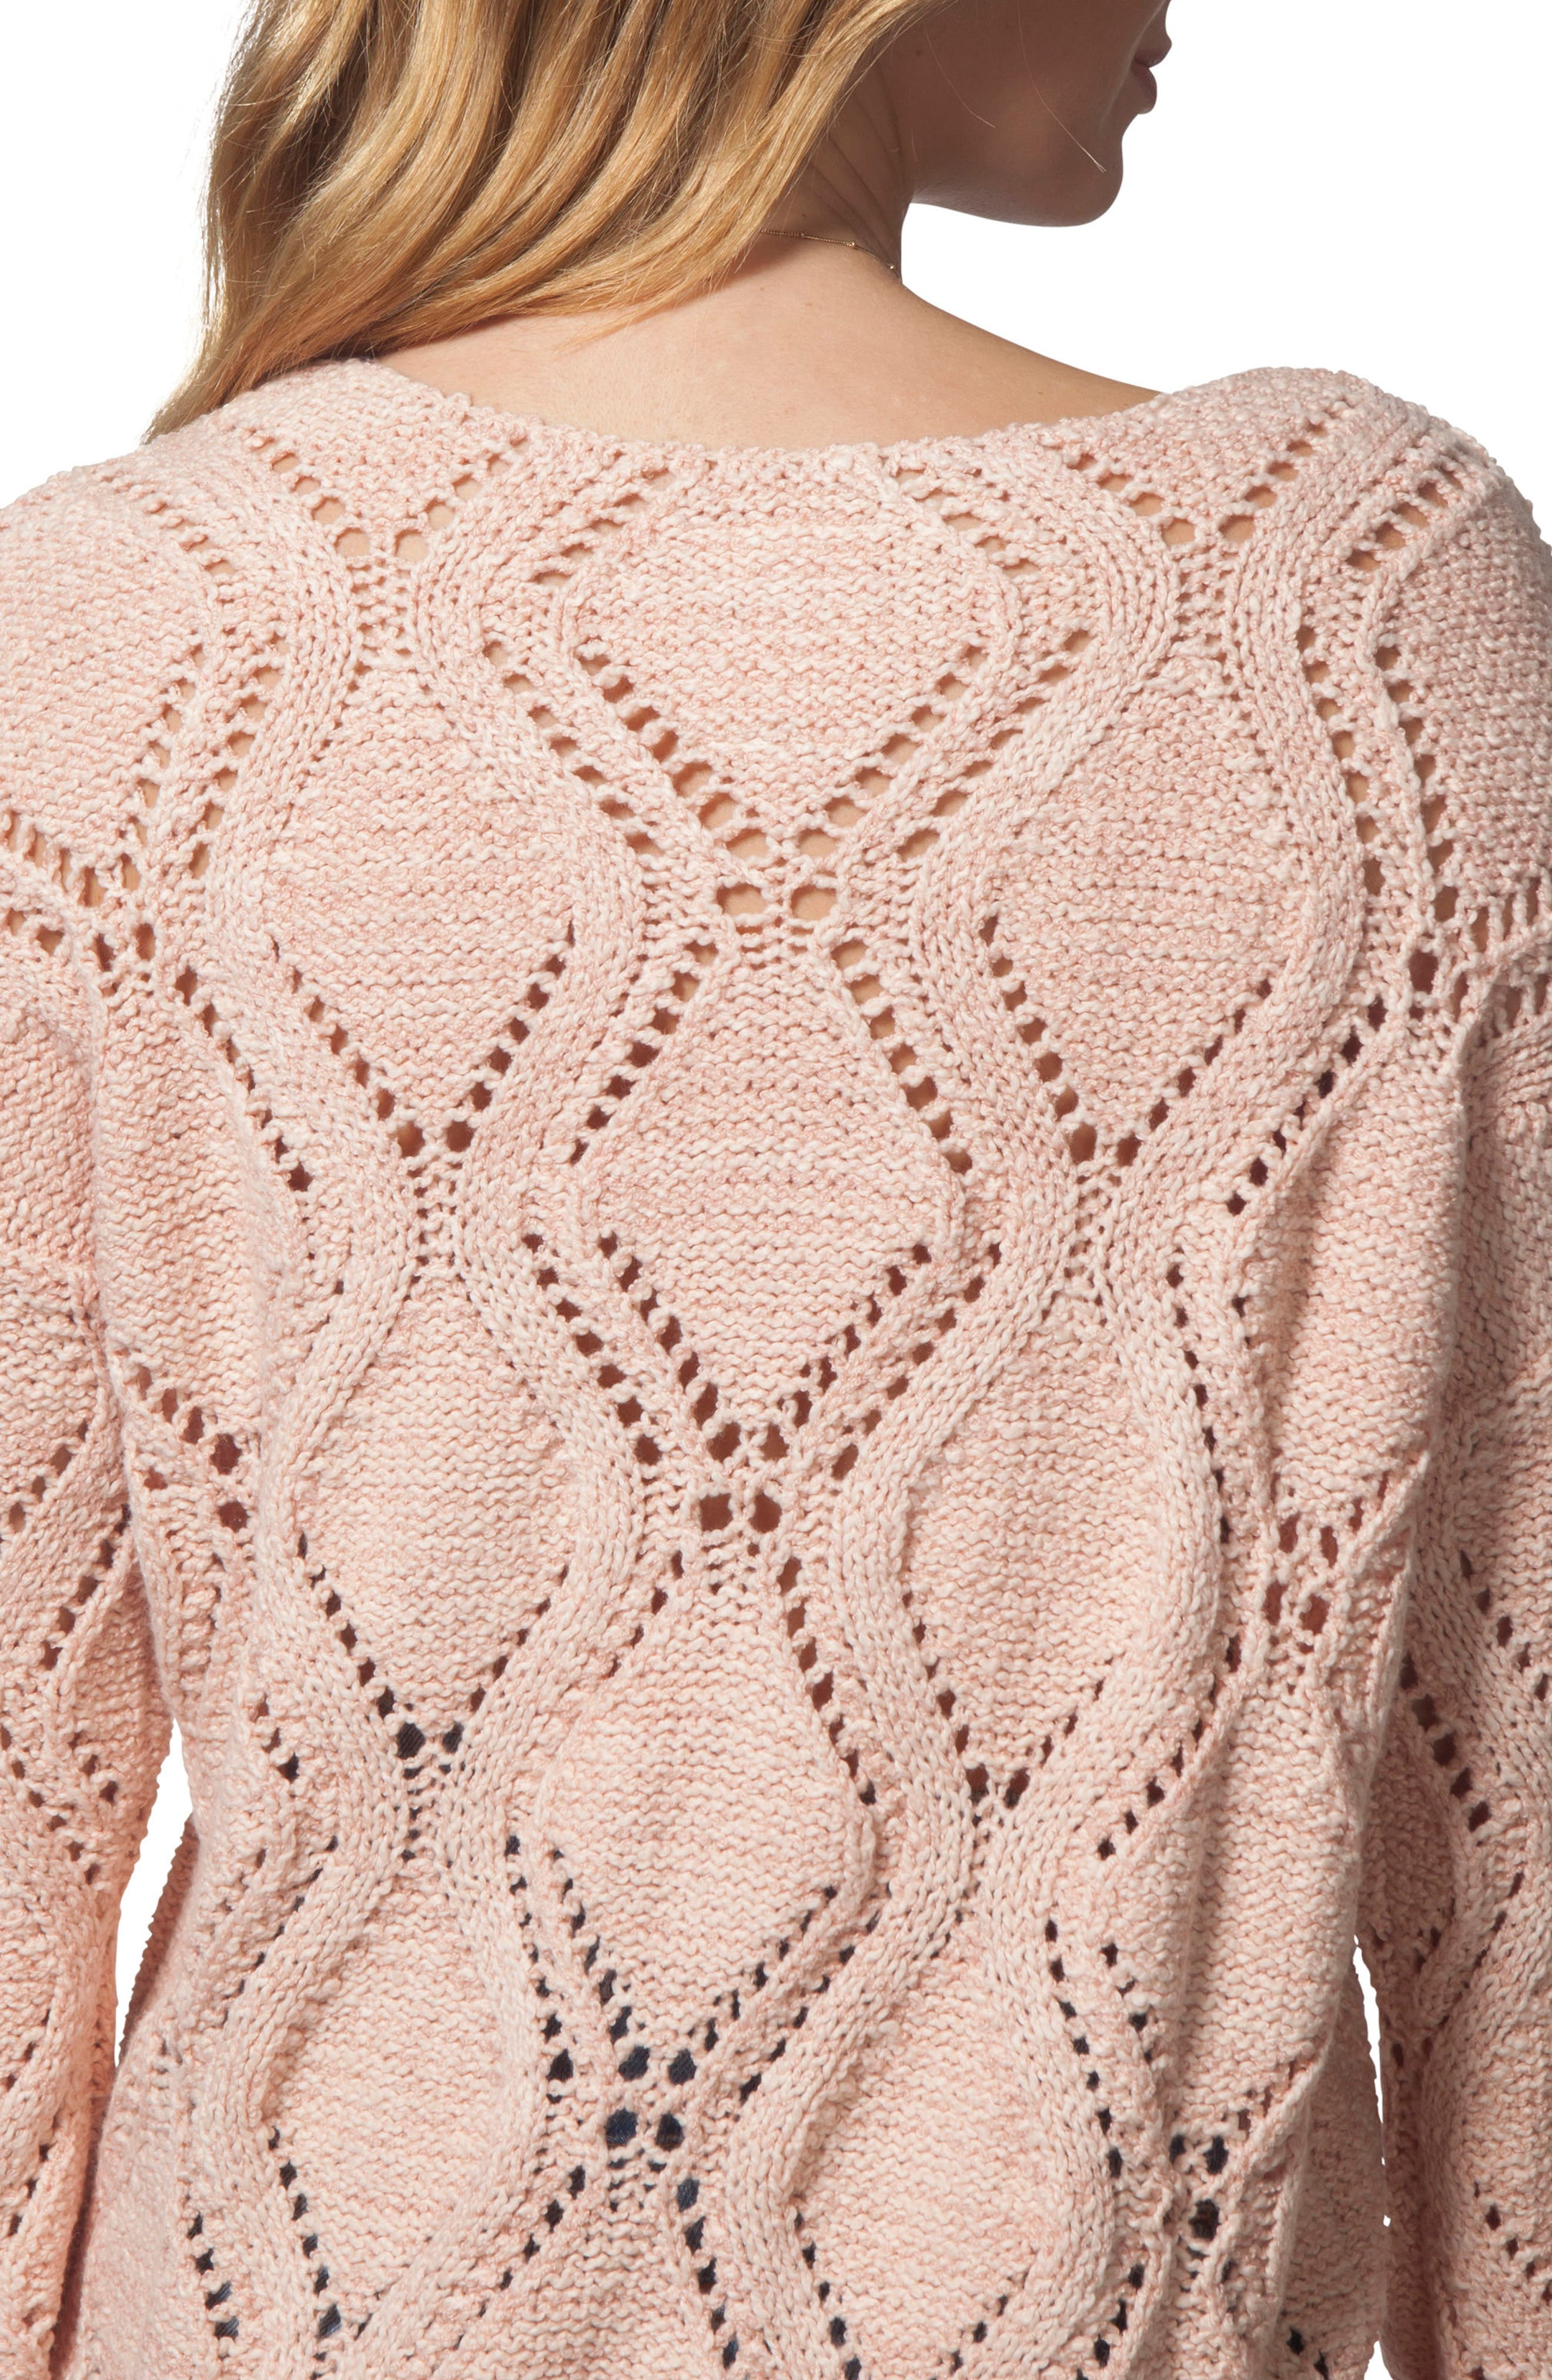 Love Spell Sweater,                             Alternate thumbnail 4, color,                             CORAL